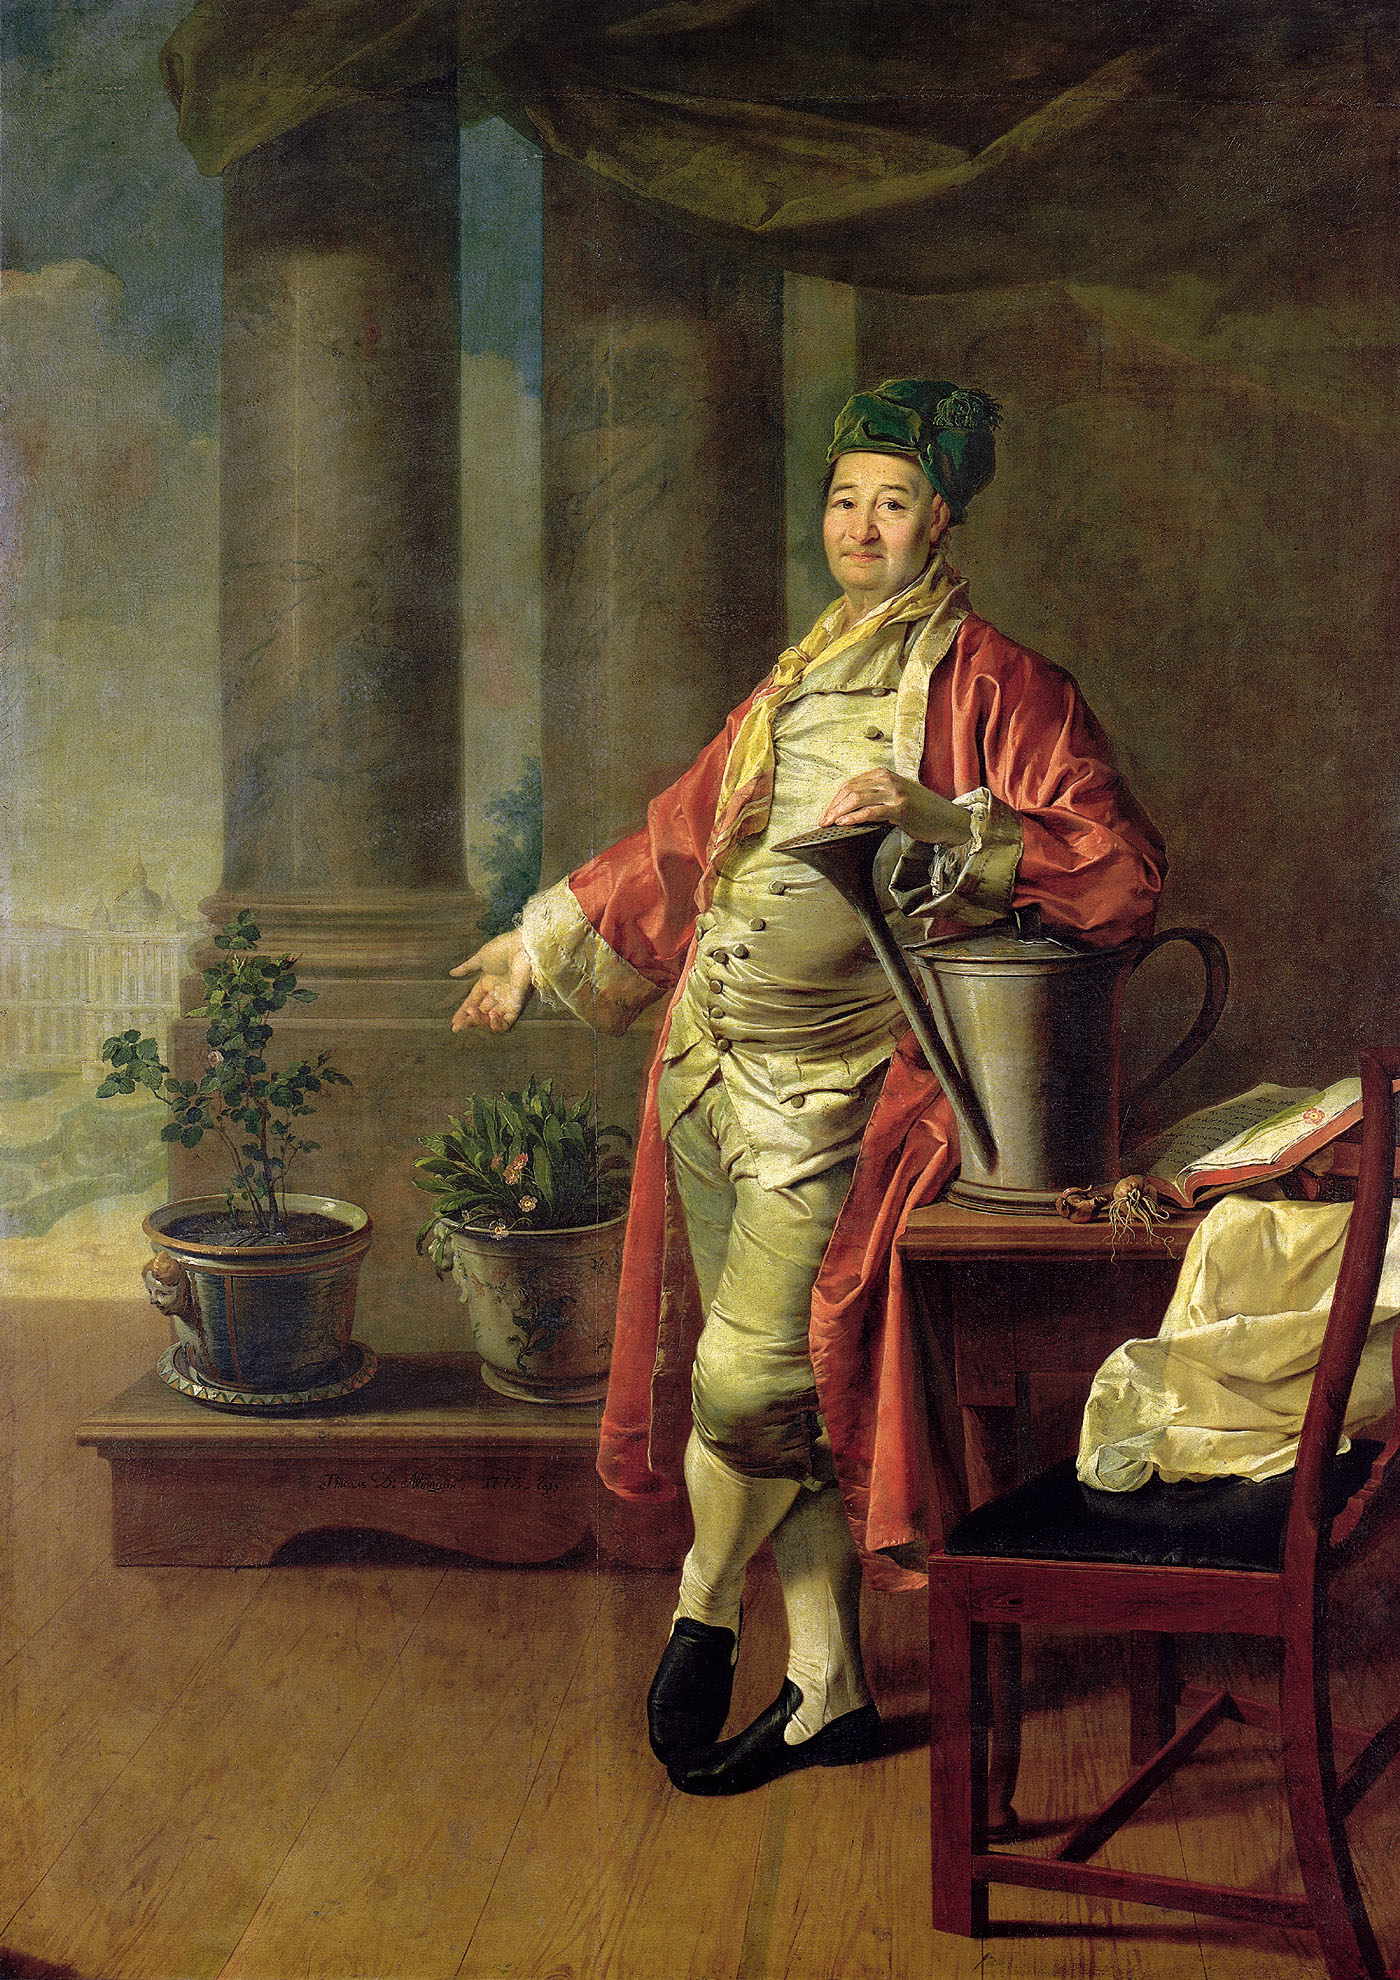 Dmitry Levitsky, Portrait of Prokofiy Demidov, 1773,The State Tretyakov Gallery, Moscow, Russia. Homewear Outfits for Wealthy Botanist. homewear outfits in art